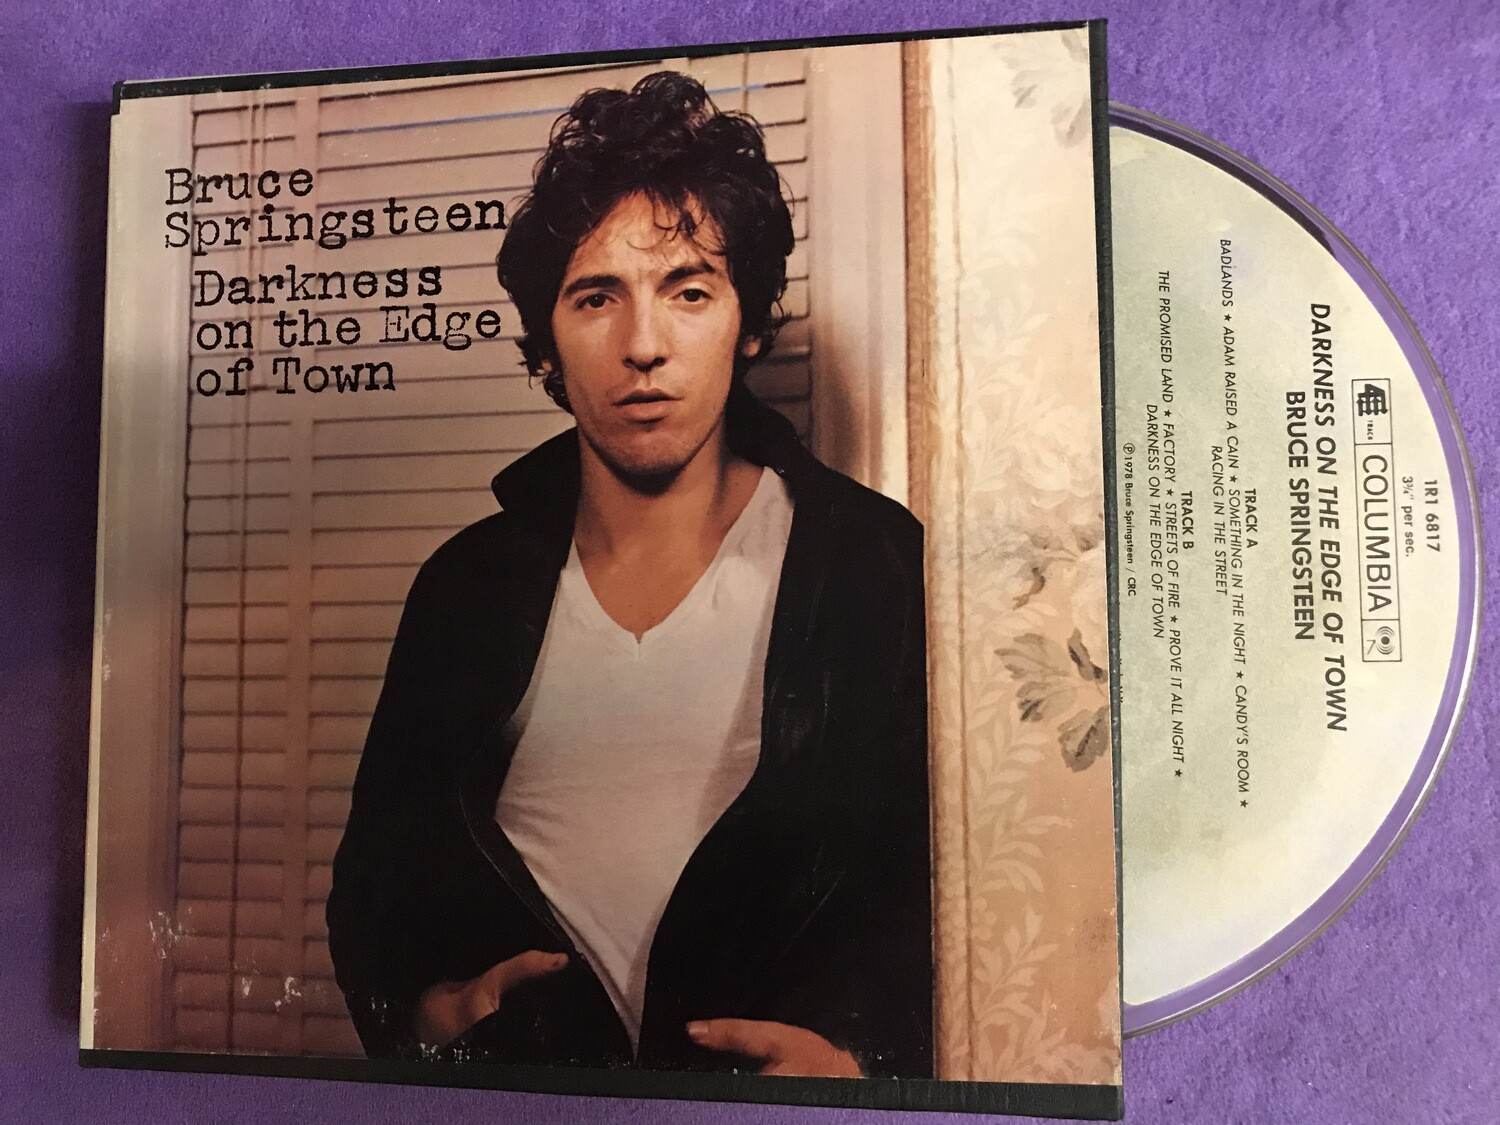 Bruce Springsteen Darkness on the Edge of Town 1978 - Reel to Reel